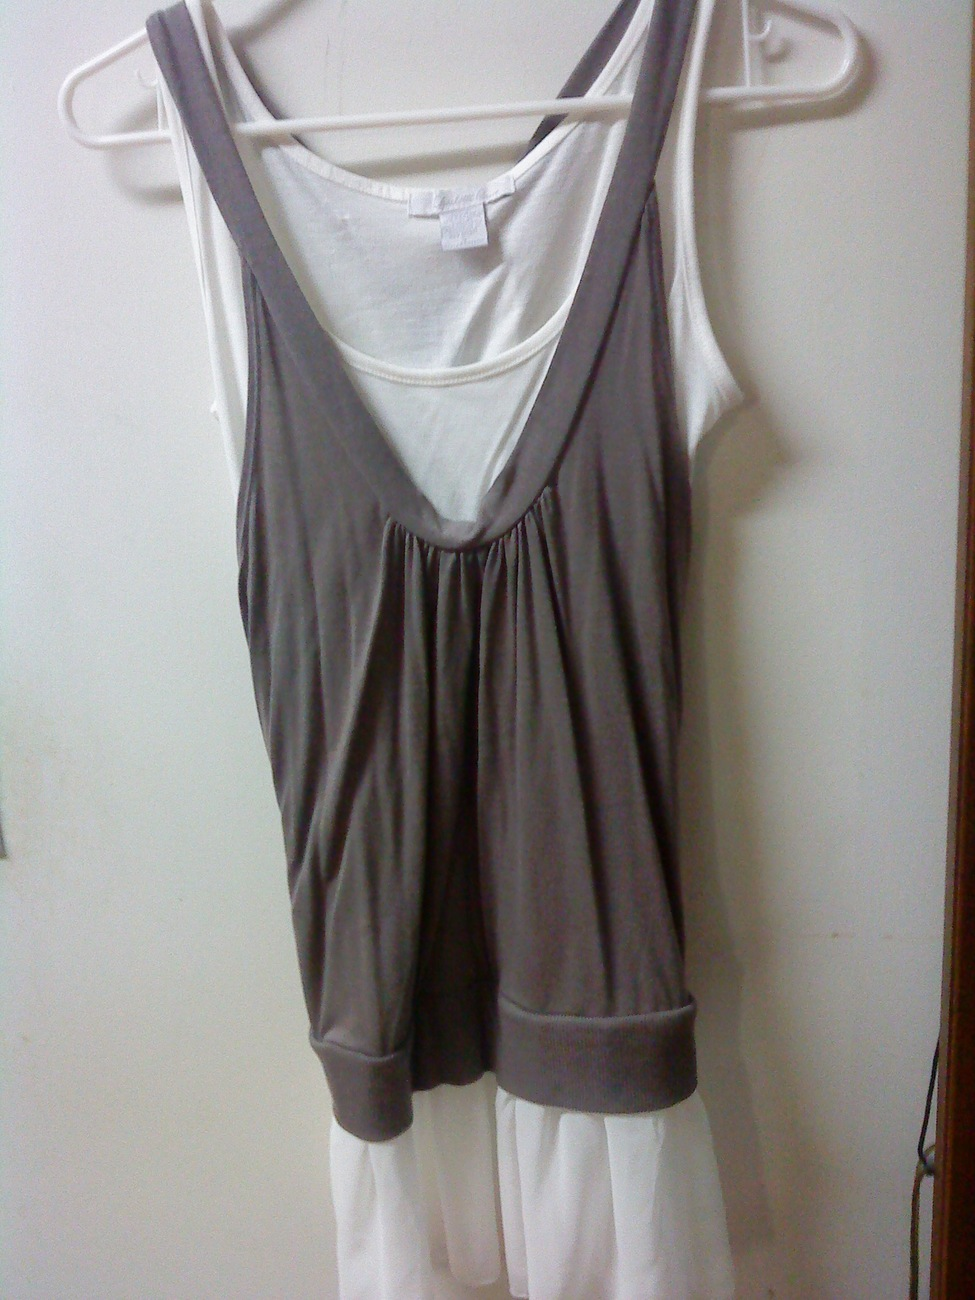 Charlotte Russe Sleeveless Twofer Gray White Layered Chiffon Top Size Small